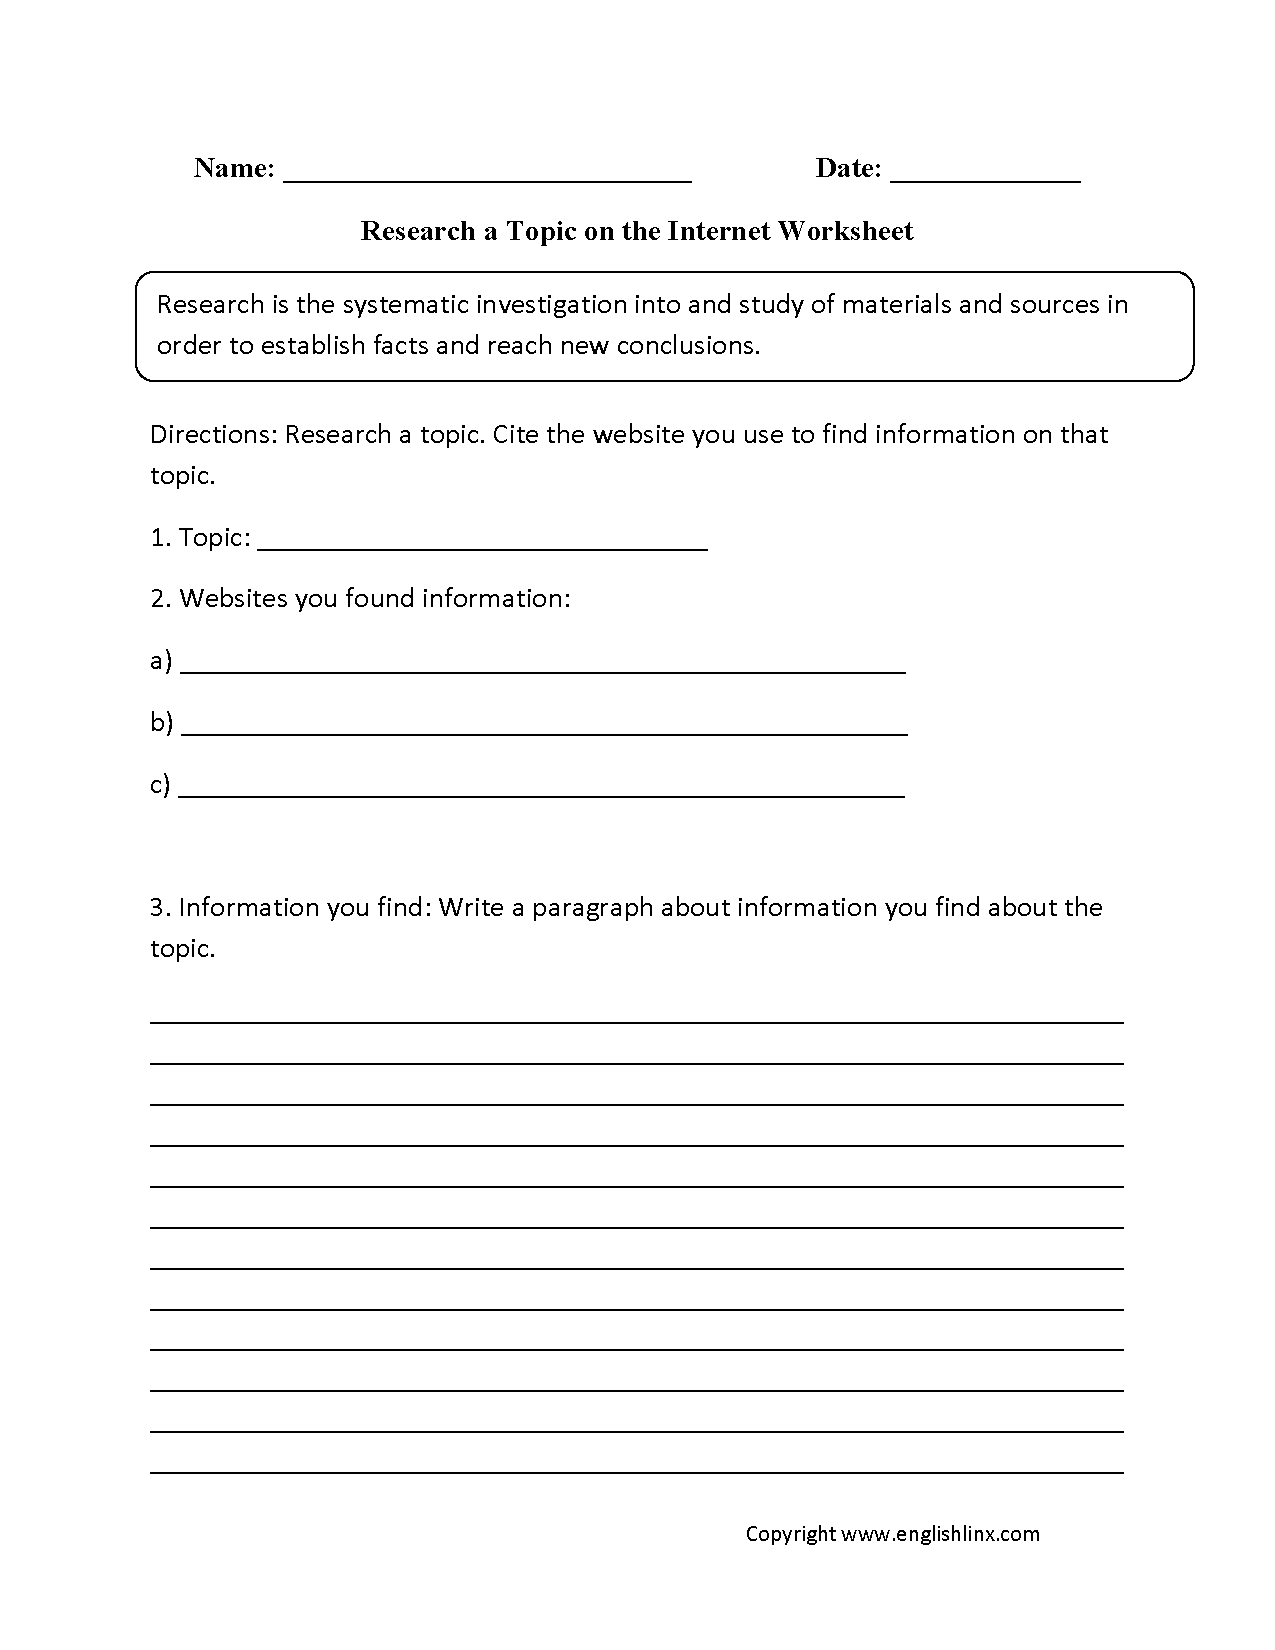 Aldiablosus  Wonderful Englishlinxcom  Research Worksheets With Remarkable On The Internet Worksheet With Appealing Homophones Worksheet For Grade  Also Balancing Equations Worksheets With Answers In Addition Th Grade Word Problems Worksheets Free And Rounding To  Worksheet As Well As Literacy Worksheets Year  Additionally Class  English Grammar Worksheets From Englishlinxcom With Aldiablosus  Remarkable Englishlinxcom  Research Worksheets With Appealing On The Internet Worksheet And Wonderful Homophones Worksheet For Grade  Also Balancing Equations Worksheets With Answers In Addition Th Grade Word Problems Worksheets Free From Englishlinxcom